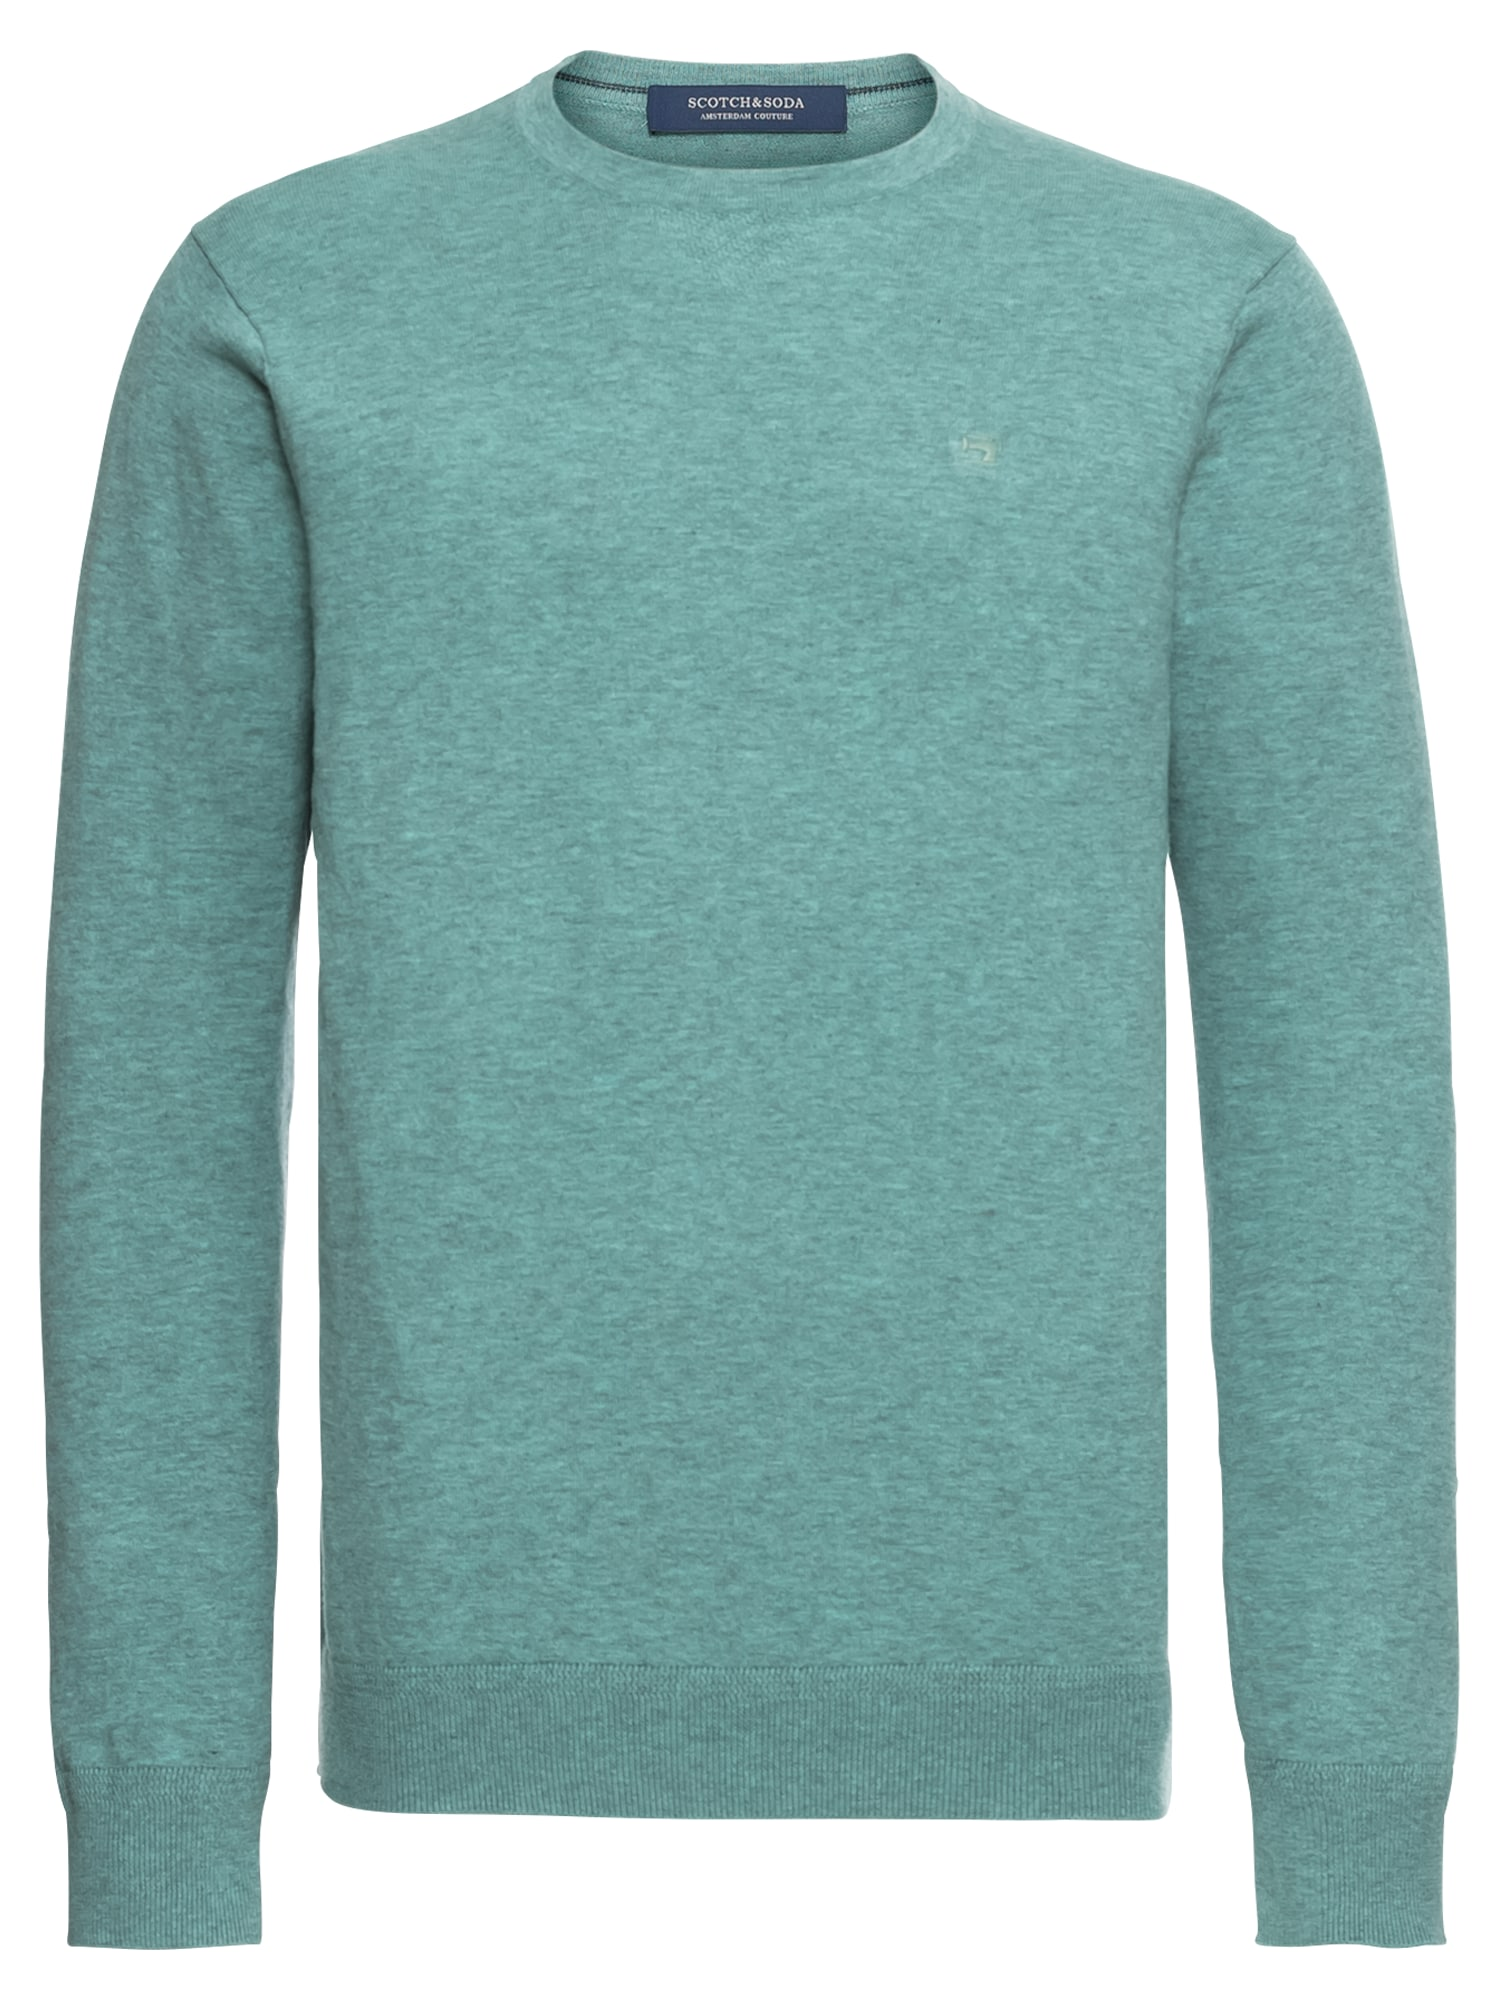 SCOTCH  and  SODA Heren Trui Classic cotton melange crewneck pull turquoise